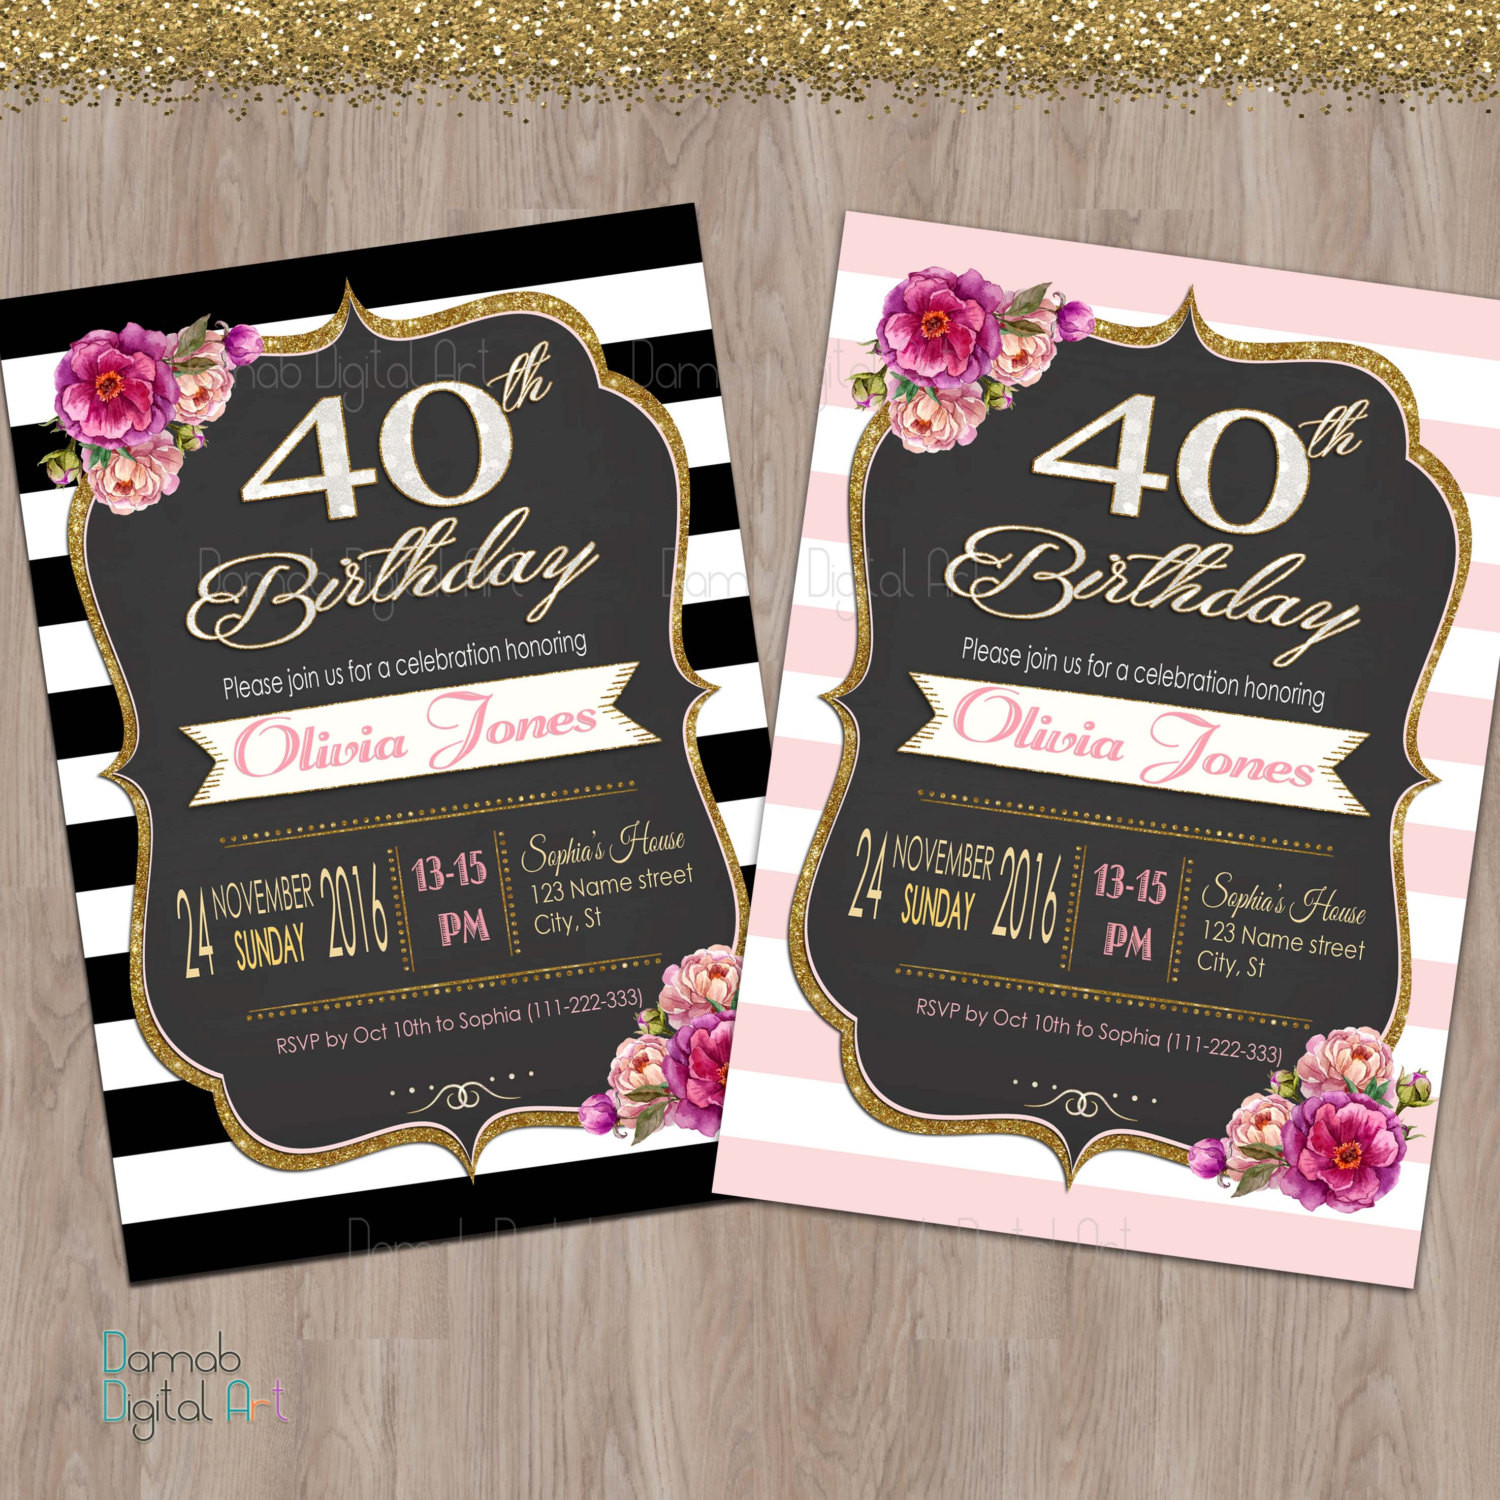 Best ideas about 40th Birthday Invitations For Him . Save or Pin 40th birthday invitation women 40th birthday invitation for Now.